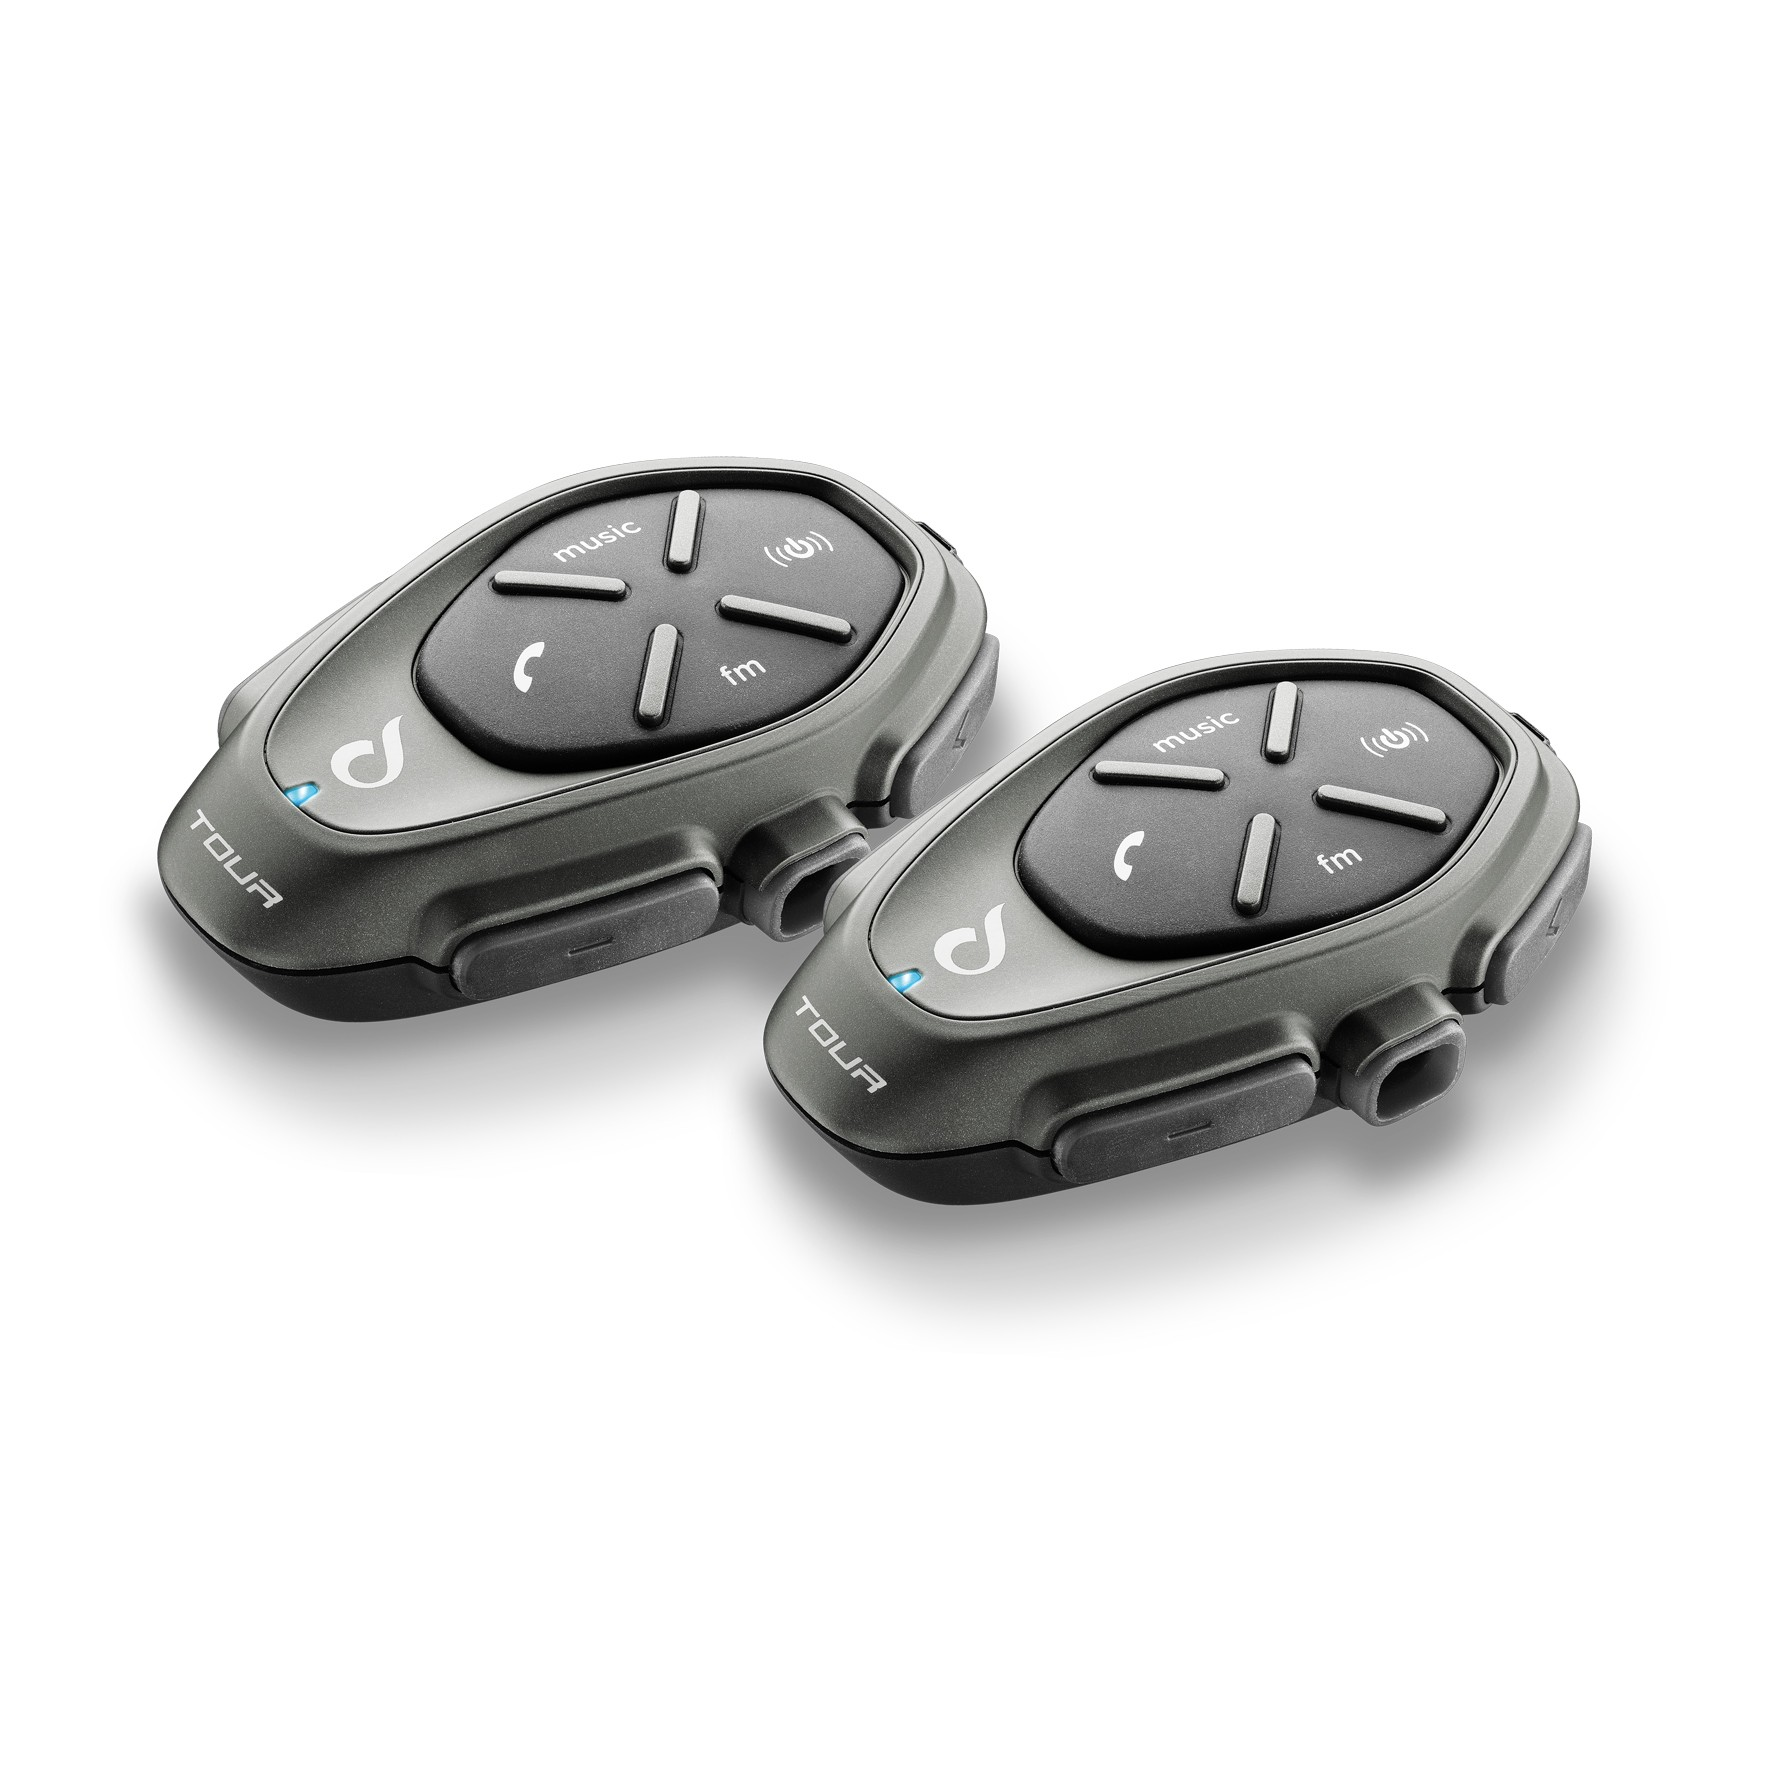 interphone tour motorcycle headset and intercom twin pack products interphone wireless. Black Bedroom Furniture Sets. Home Design Ideas